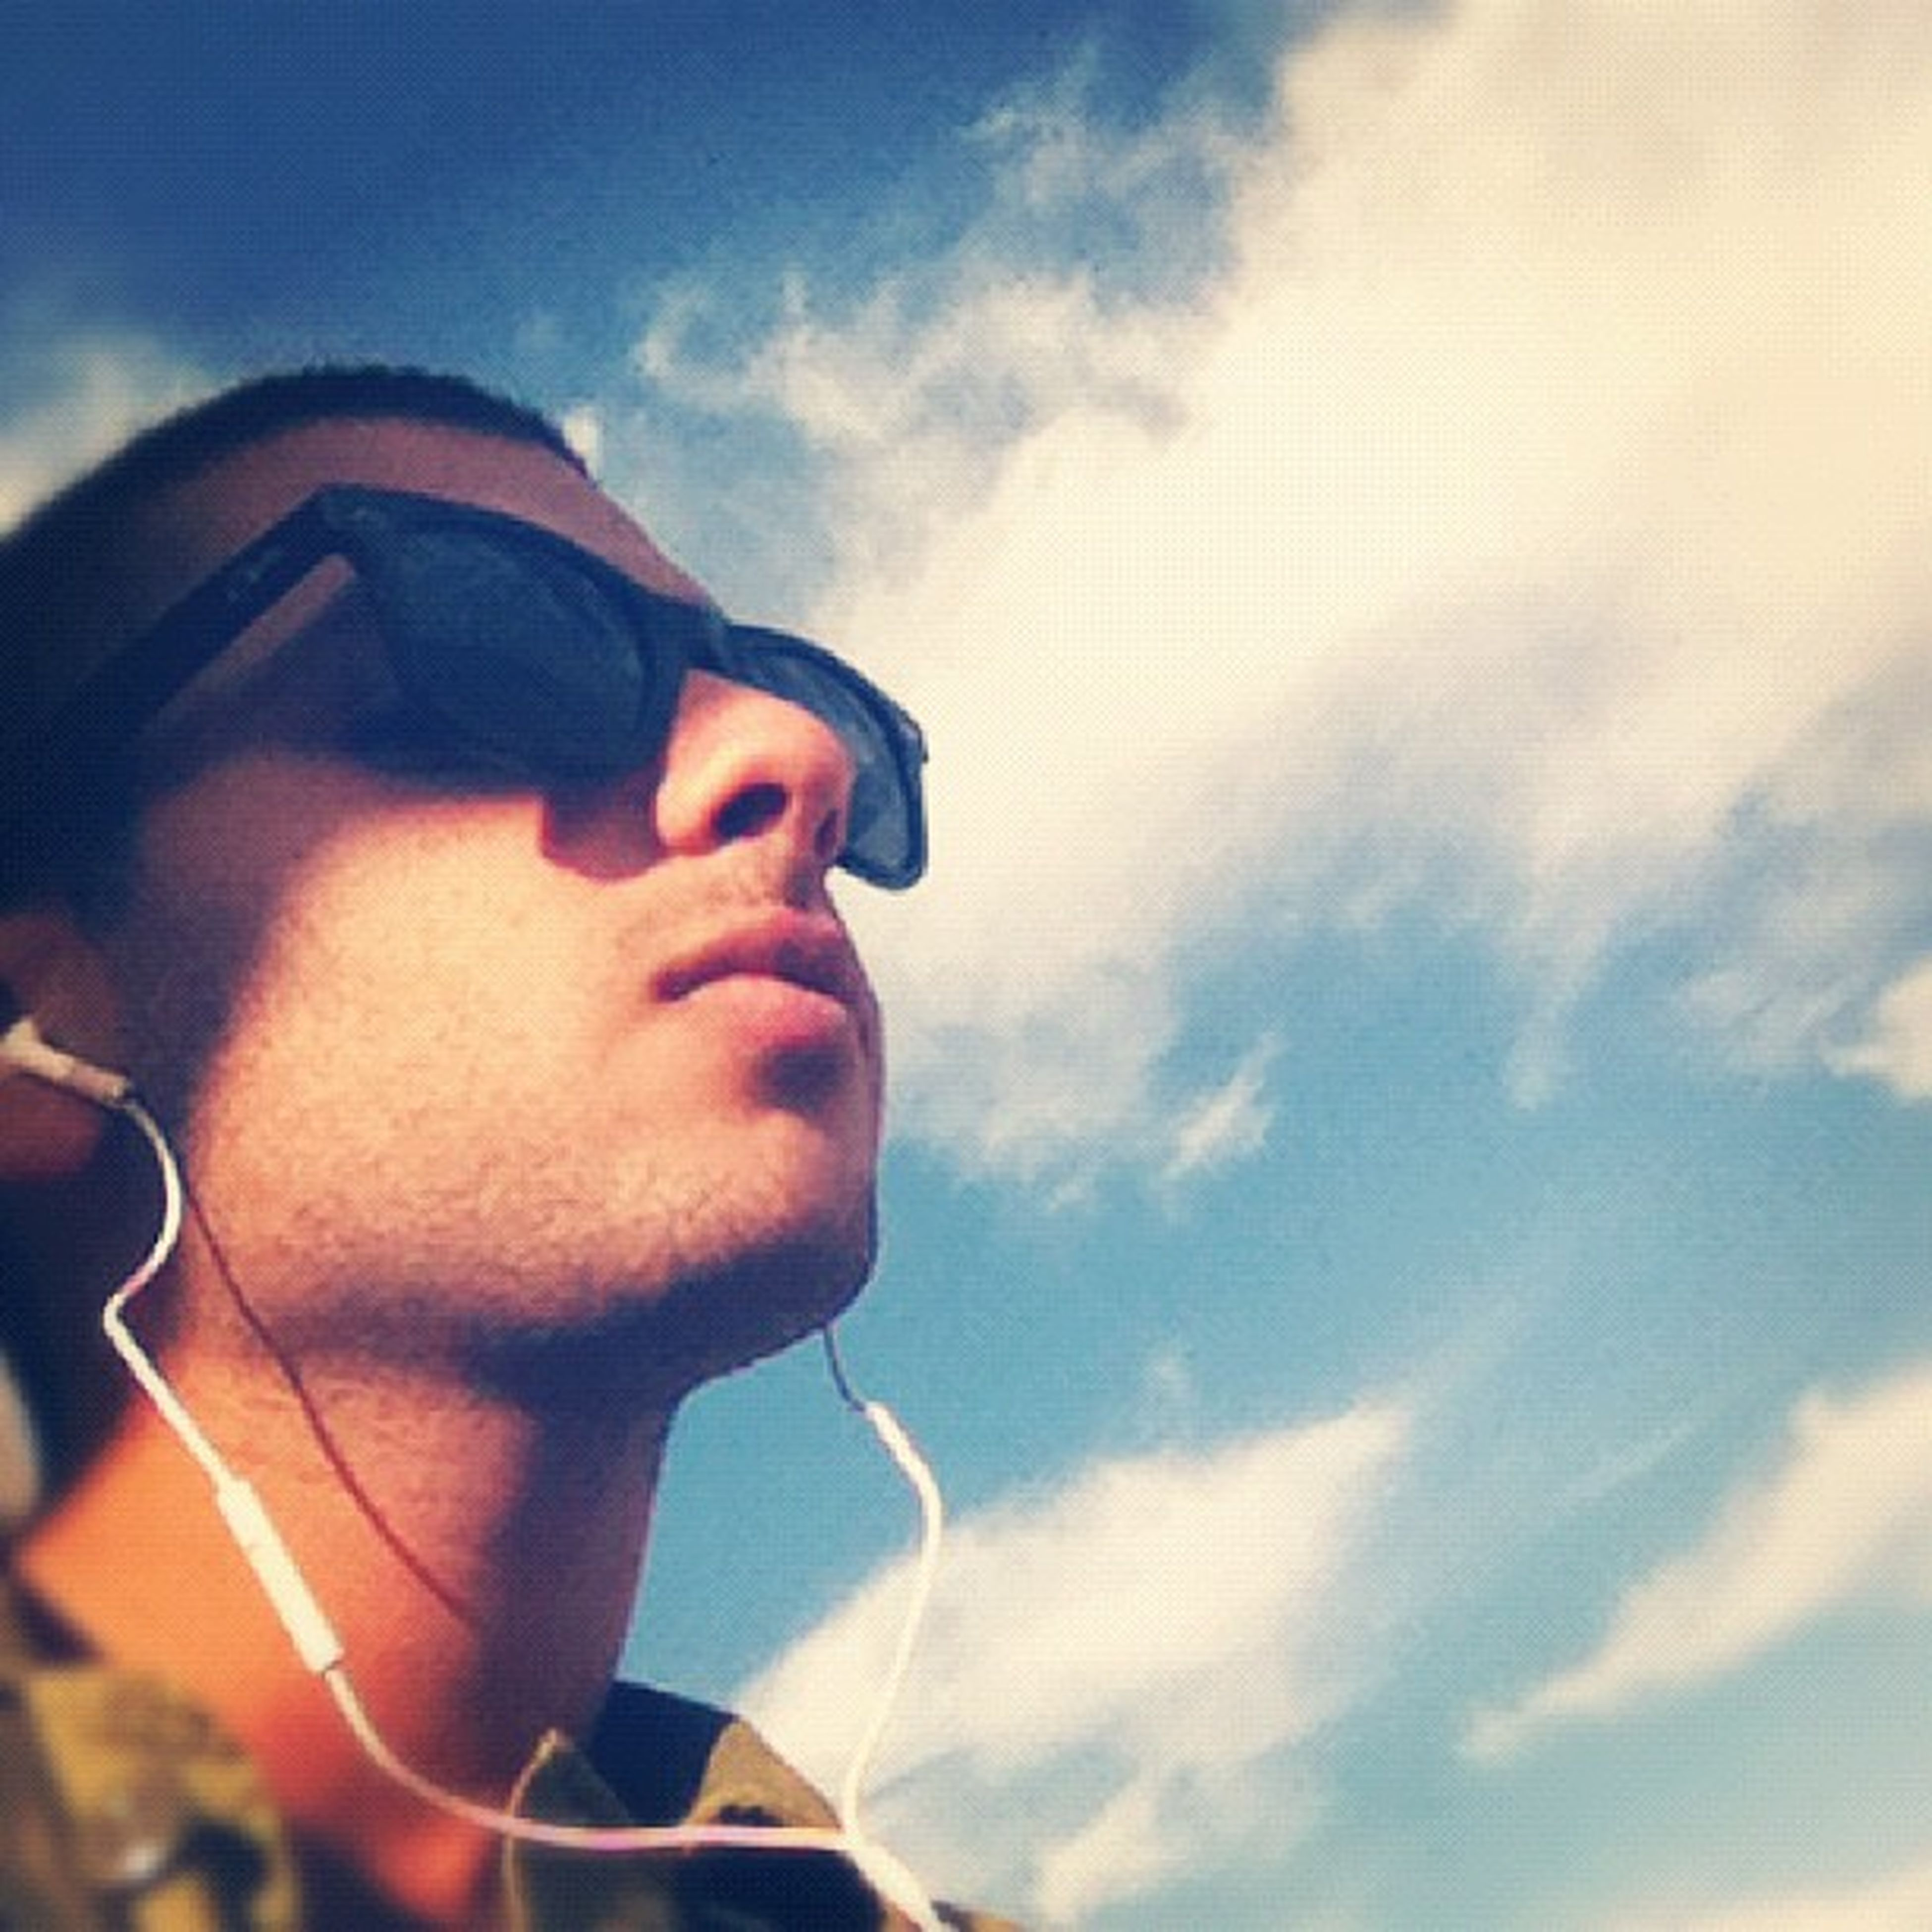 sky, part of, close-up, cropped, transportation, cloud - sky, cloud, low angle view, mode of transport, focus on foreground, reflection, sunglasses, outdoors, sunset, day, person, blue, sunlight